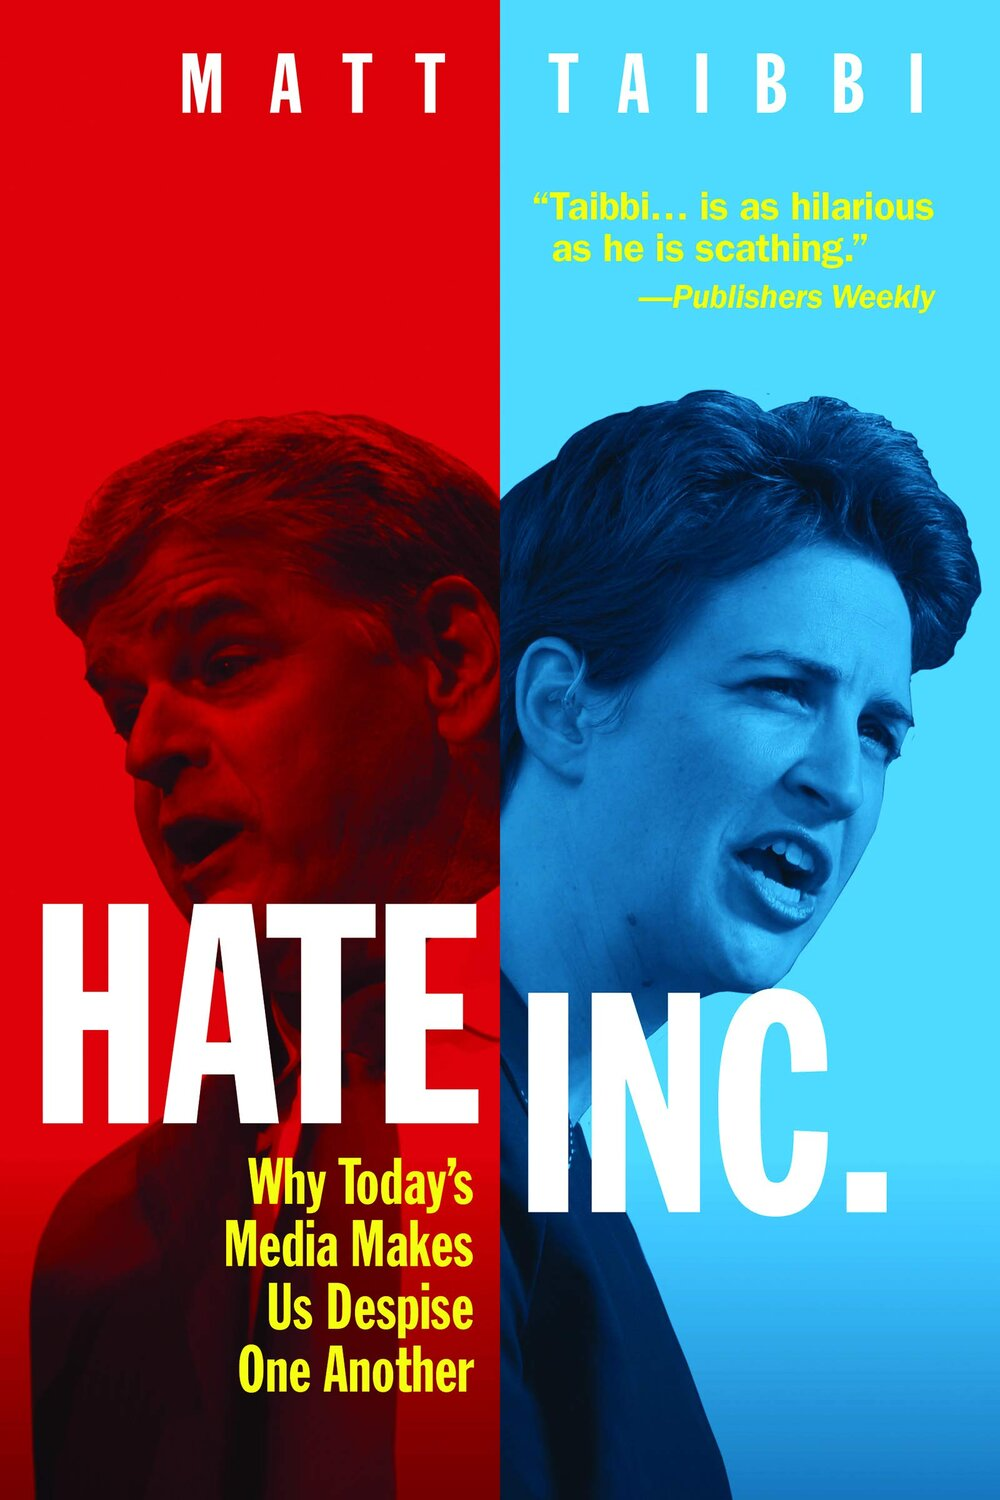 Hate Inc.: Why Today's Media Makes Us Despise One Another by Matt Taibbi